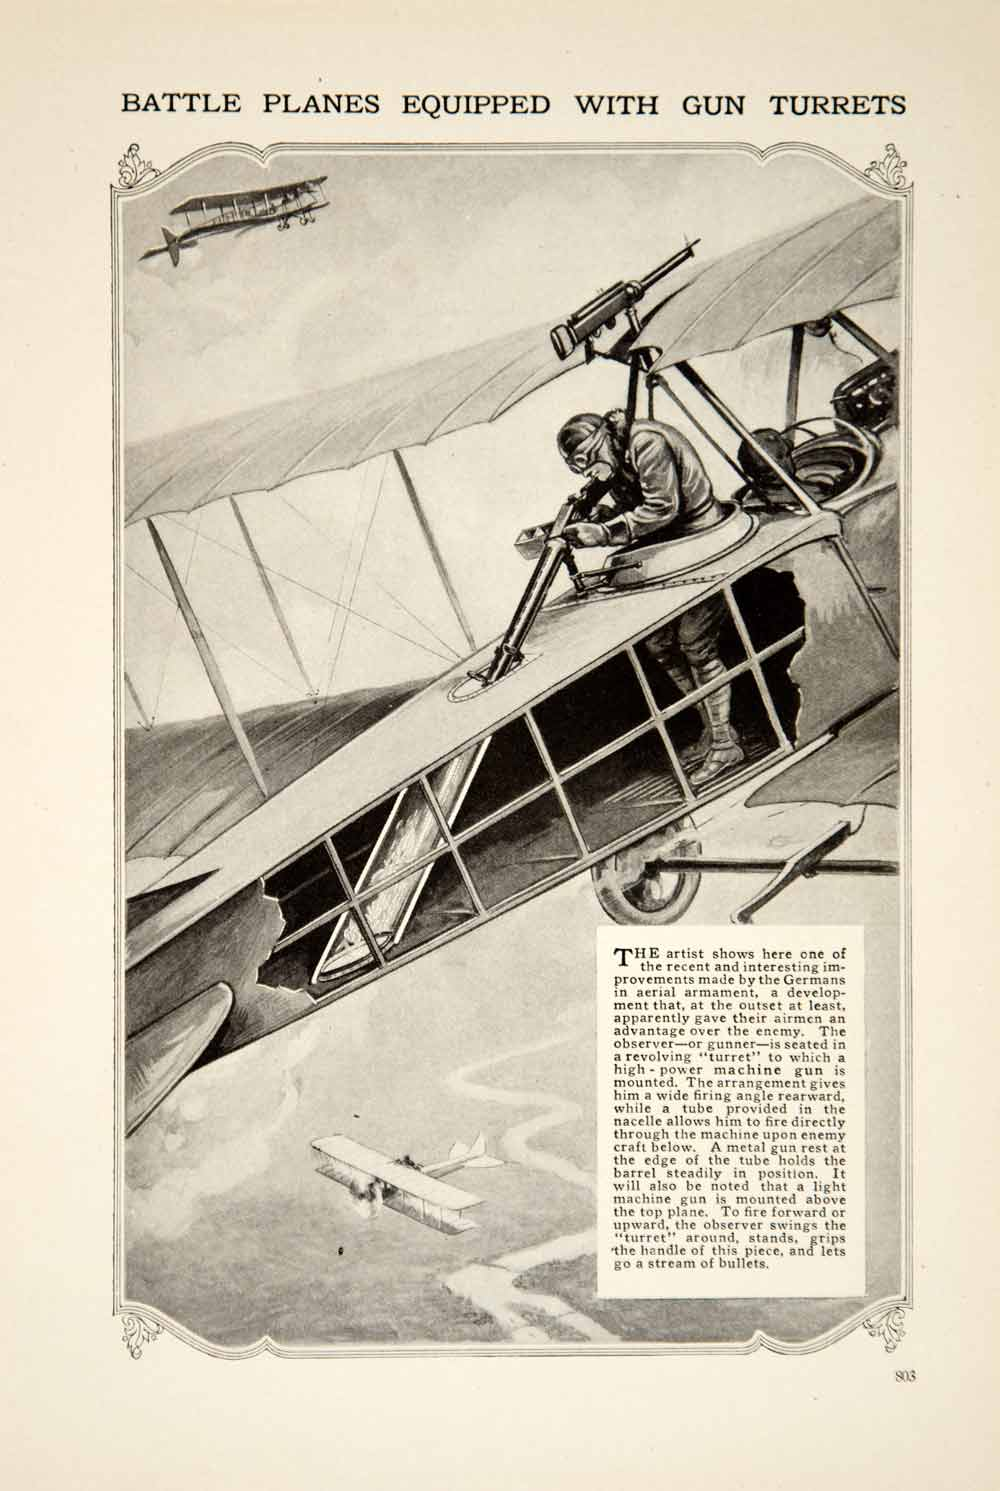 1916 Print World War I Aerial Firepower Gun Turret Aircraft Wartime Image YPM1